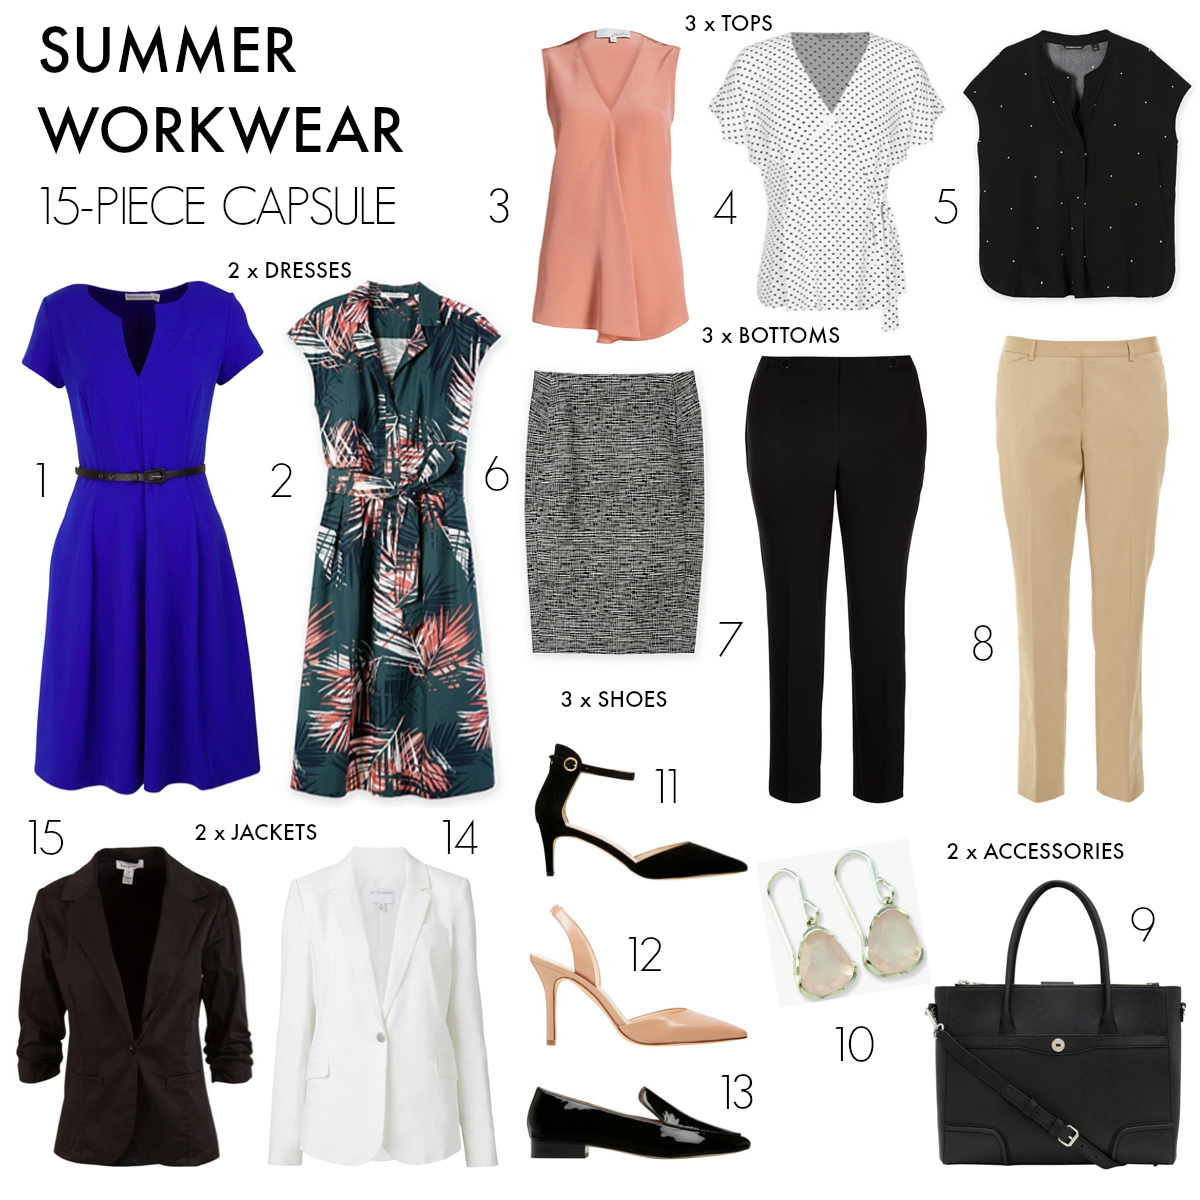 how to build a capsule wardrobe for work